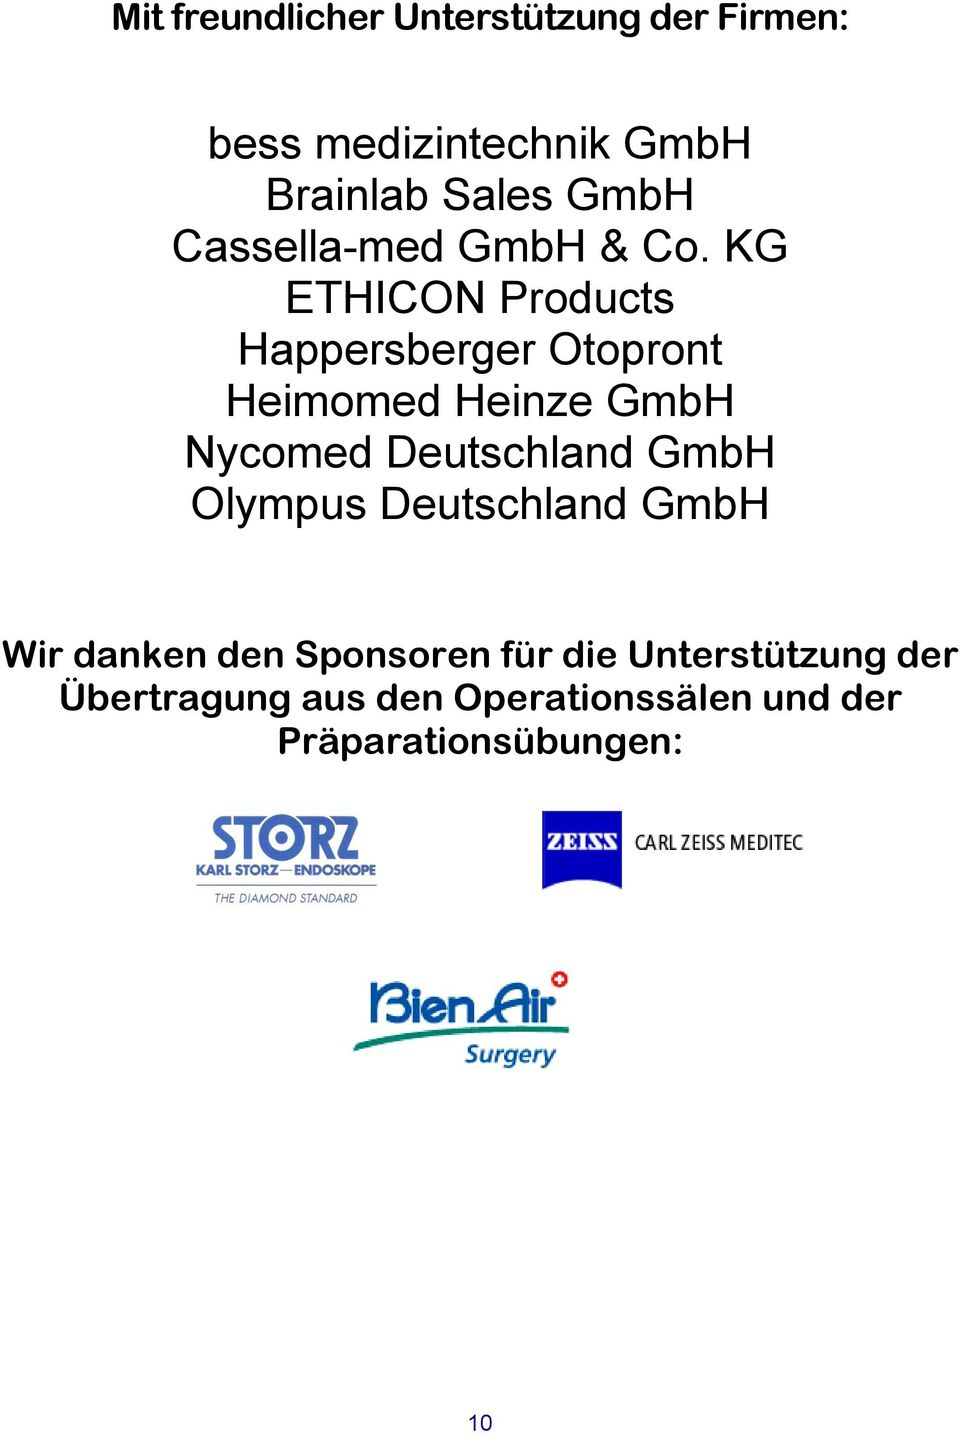 KG ETHICON Products Happersberger Otopront Heimomed Heinze GmbH Nycomed Deutschland